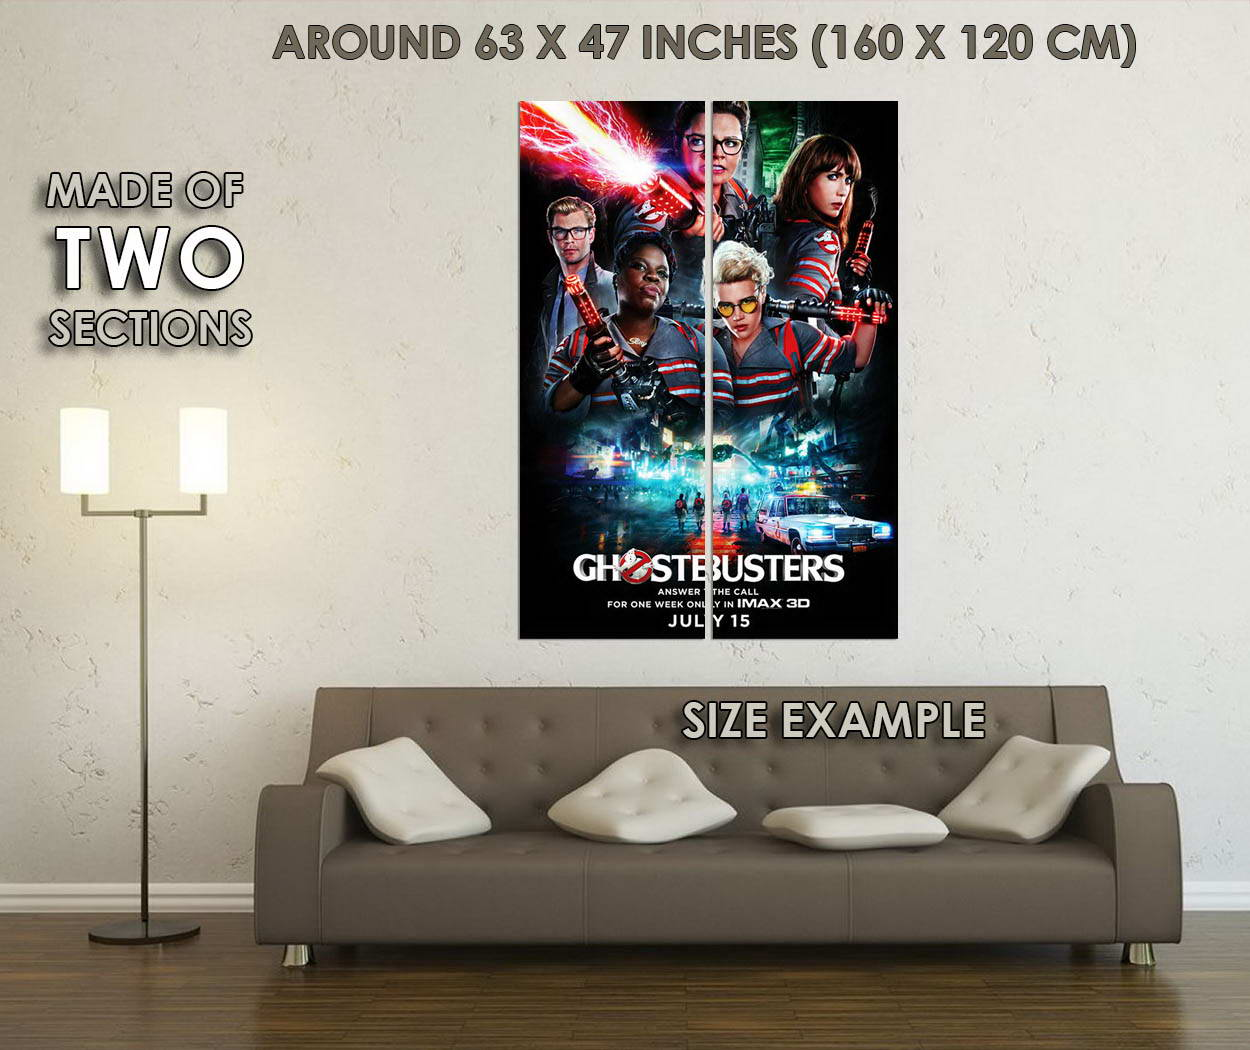 10186-Ghostbusters-2-Movie-LAMINATED-POSTER-CA thumbnail 6